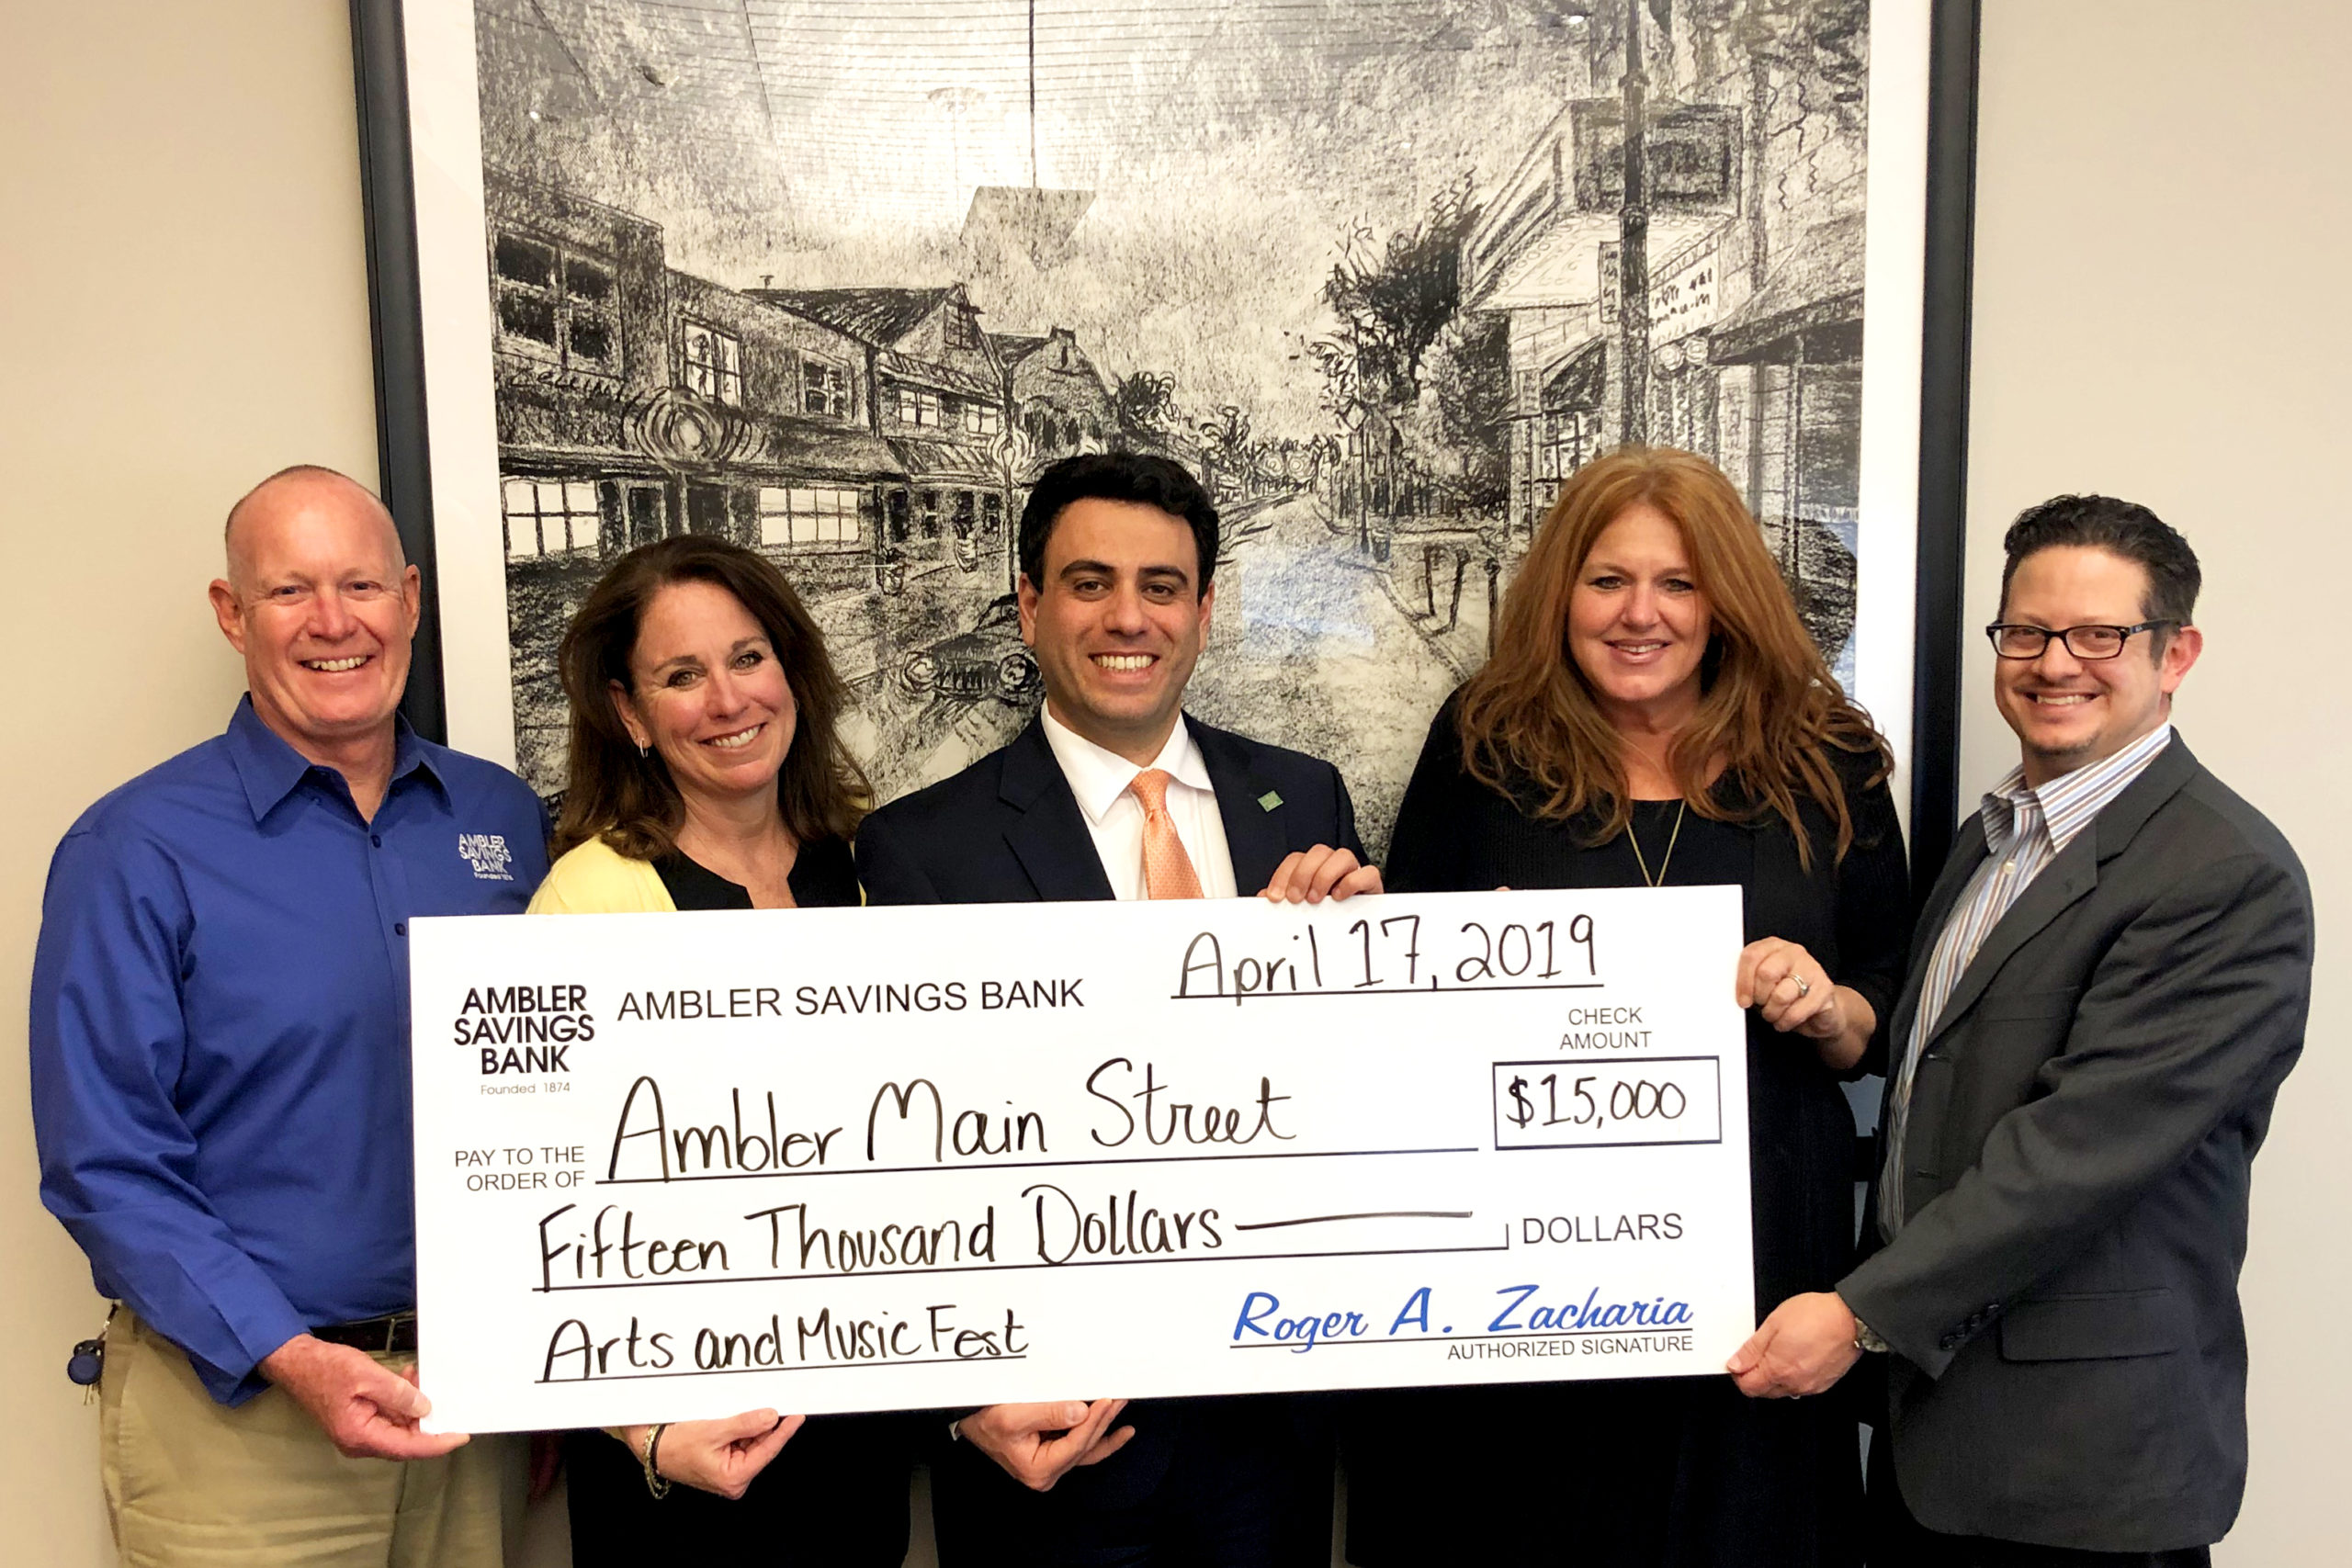 Ambler Arts and Music Fest receives $15,000 donation